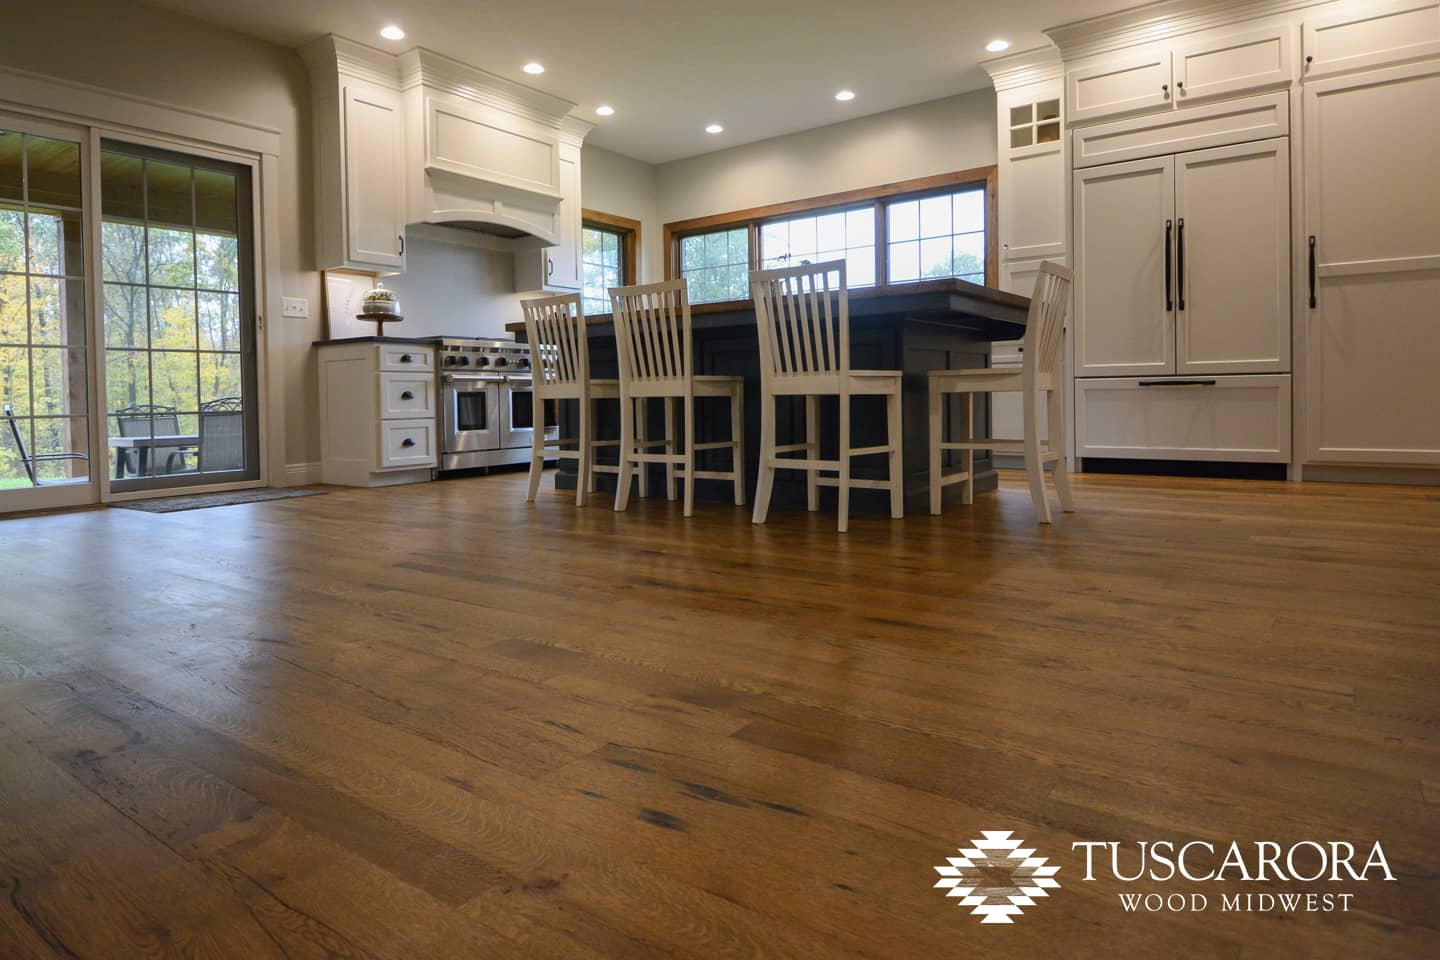 Tuscarora White Oak Flooring